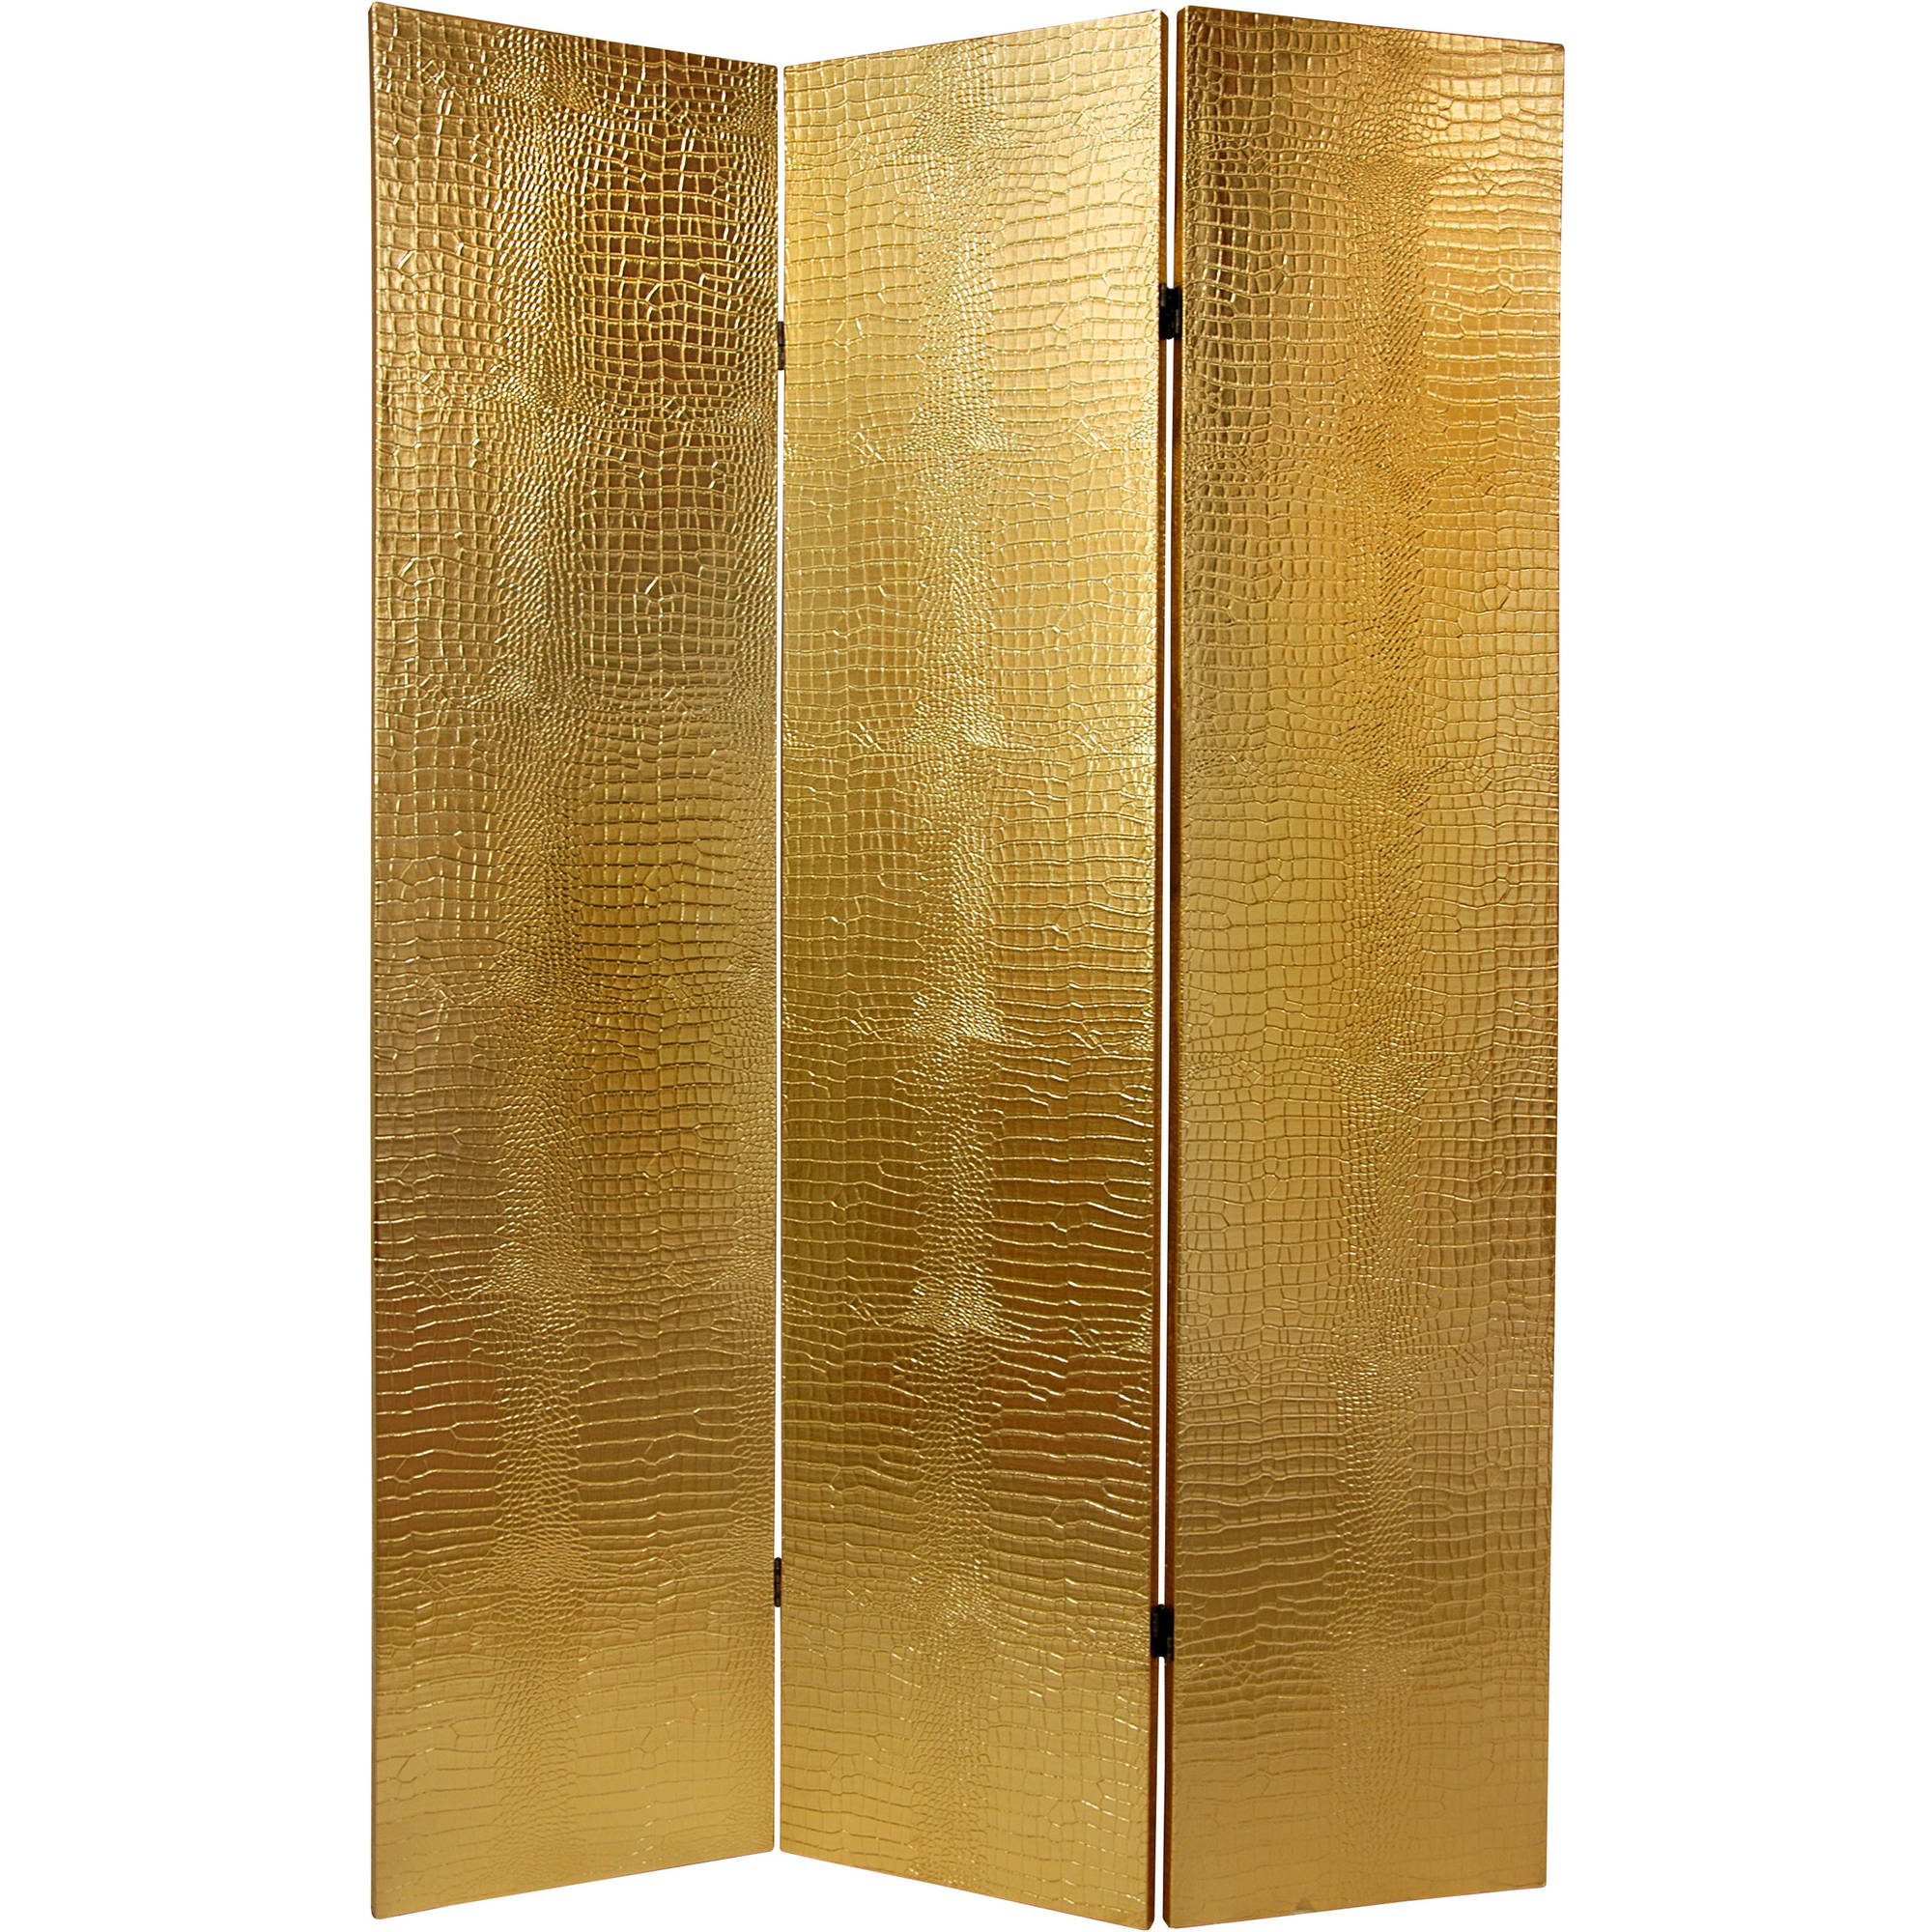 6' Faux Leather Gold Crocodile Room Divider